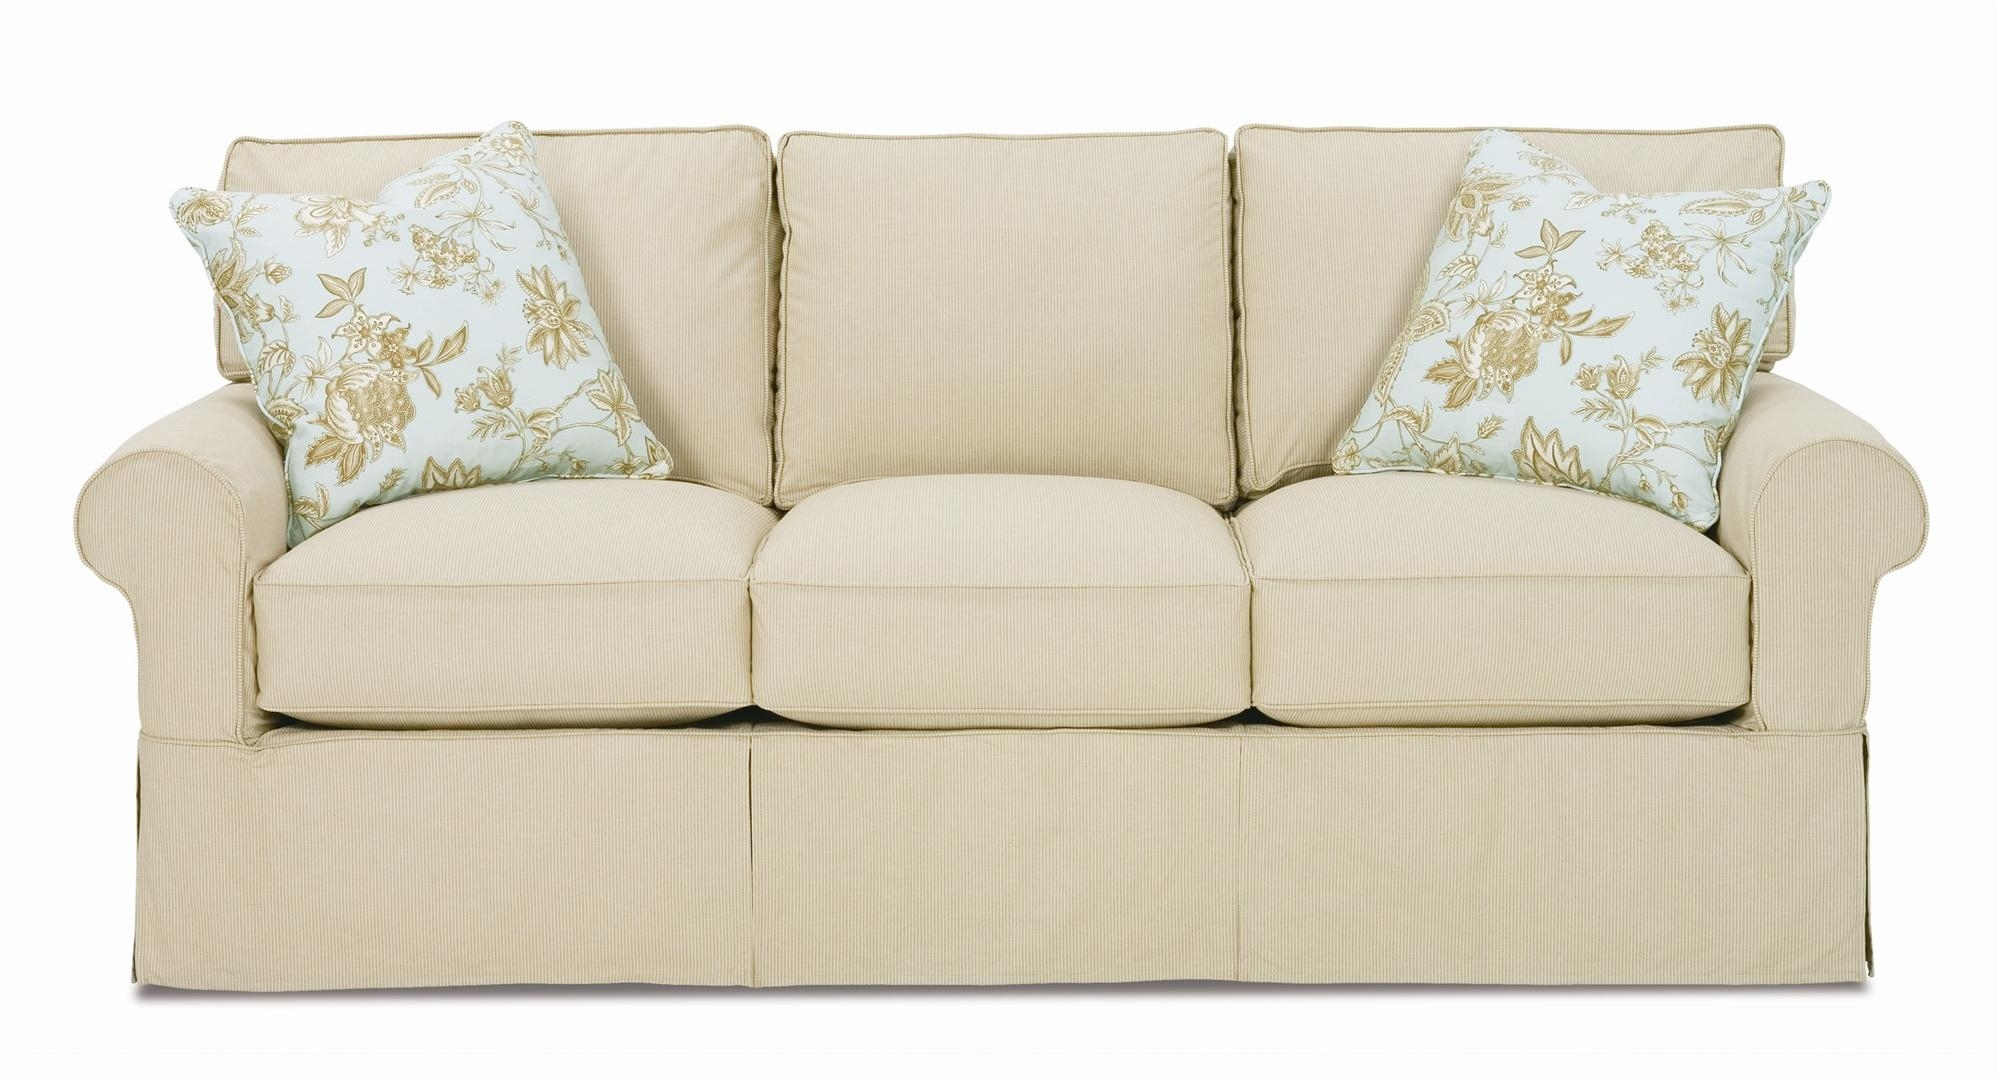 Furniture: 2 Piece Sofa Slipcover | Shabby Chic Sofa Slipcovers Inside Shabby Chic Sofas Covers (Image 11 of 20)